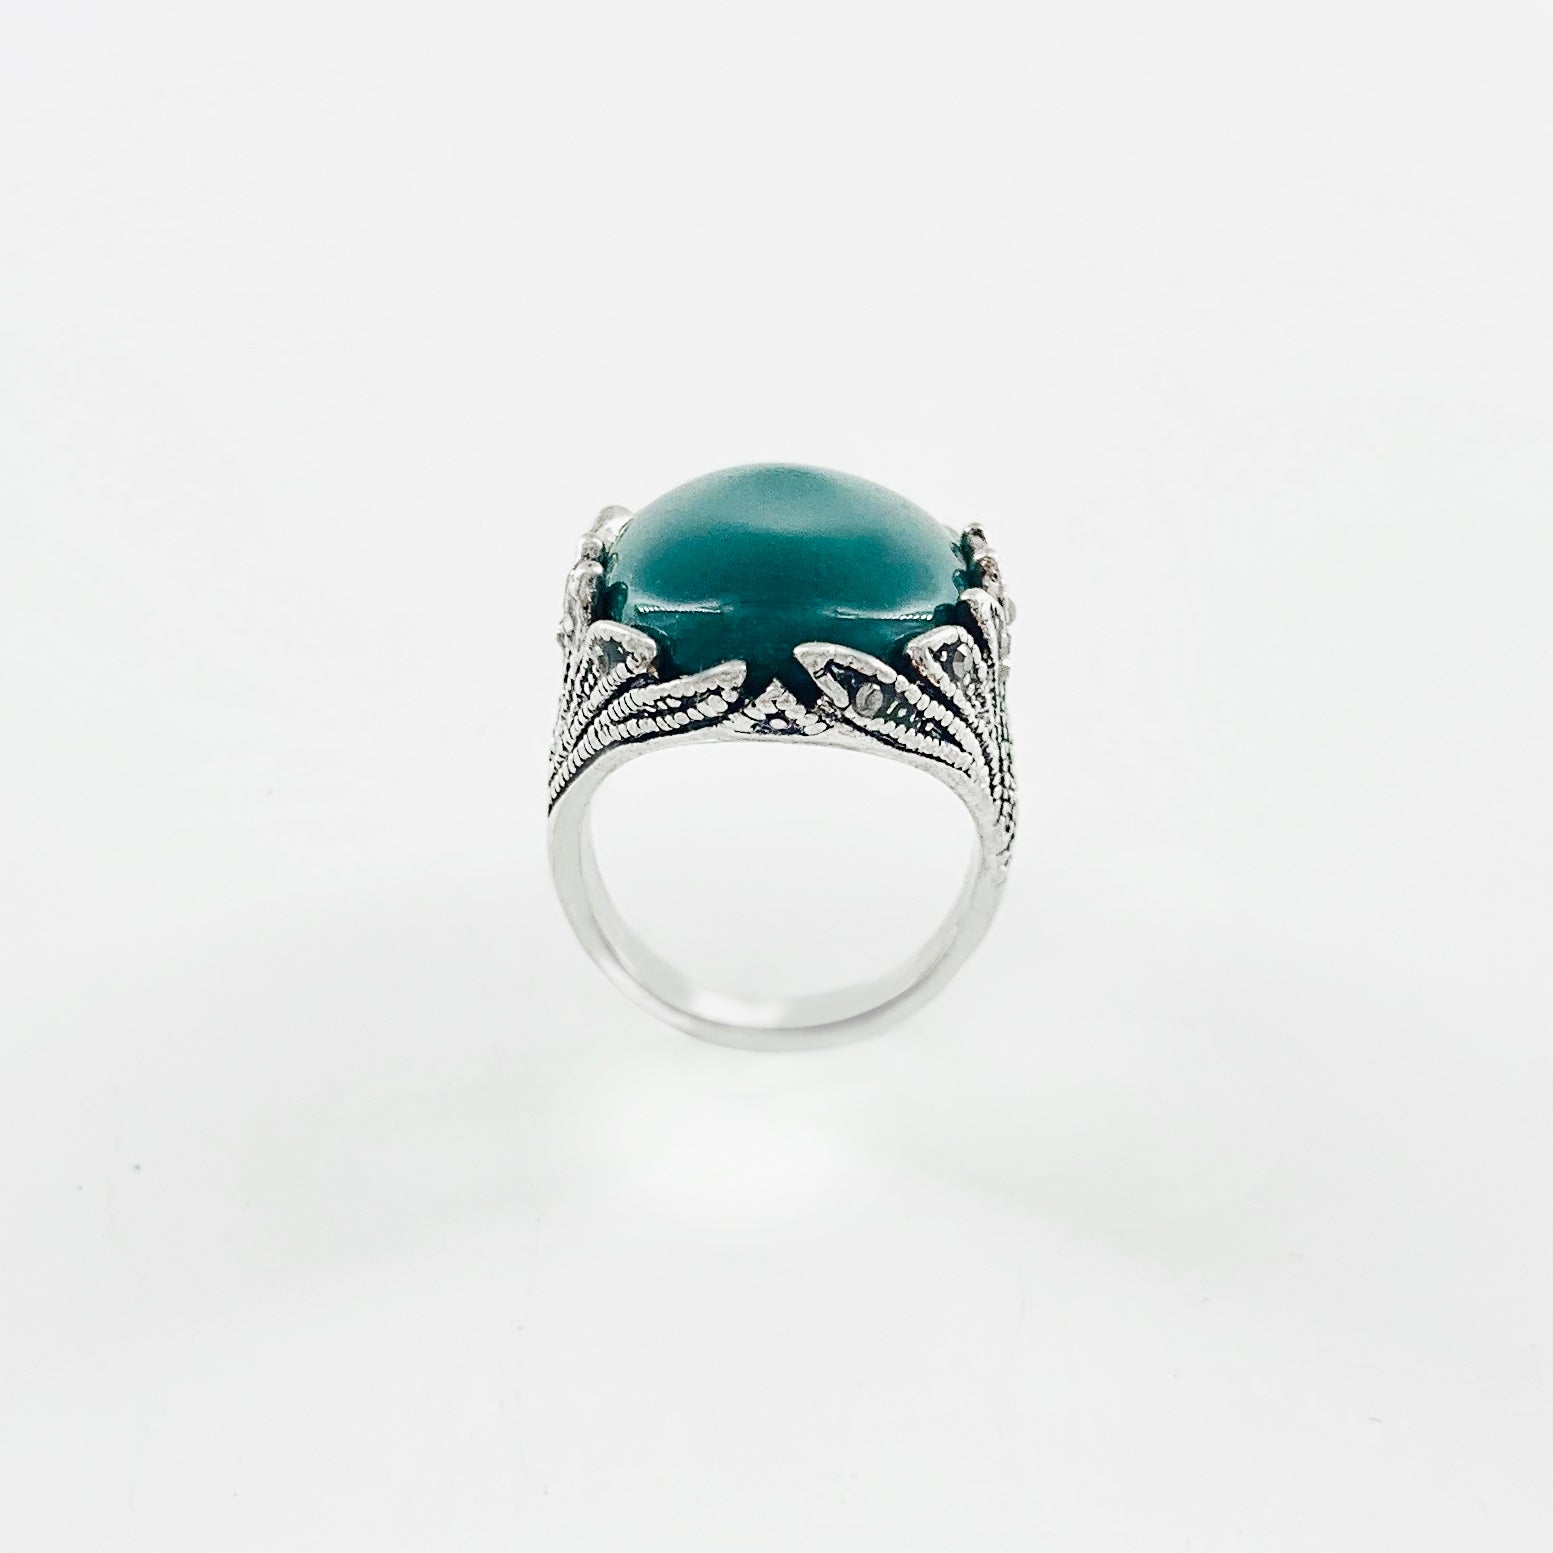 Art-deco inspired Silver ring with large green stone